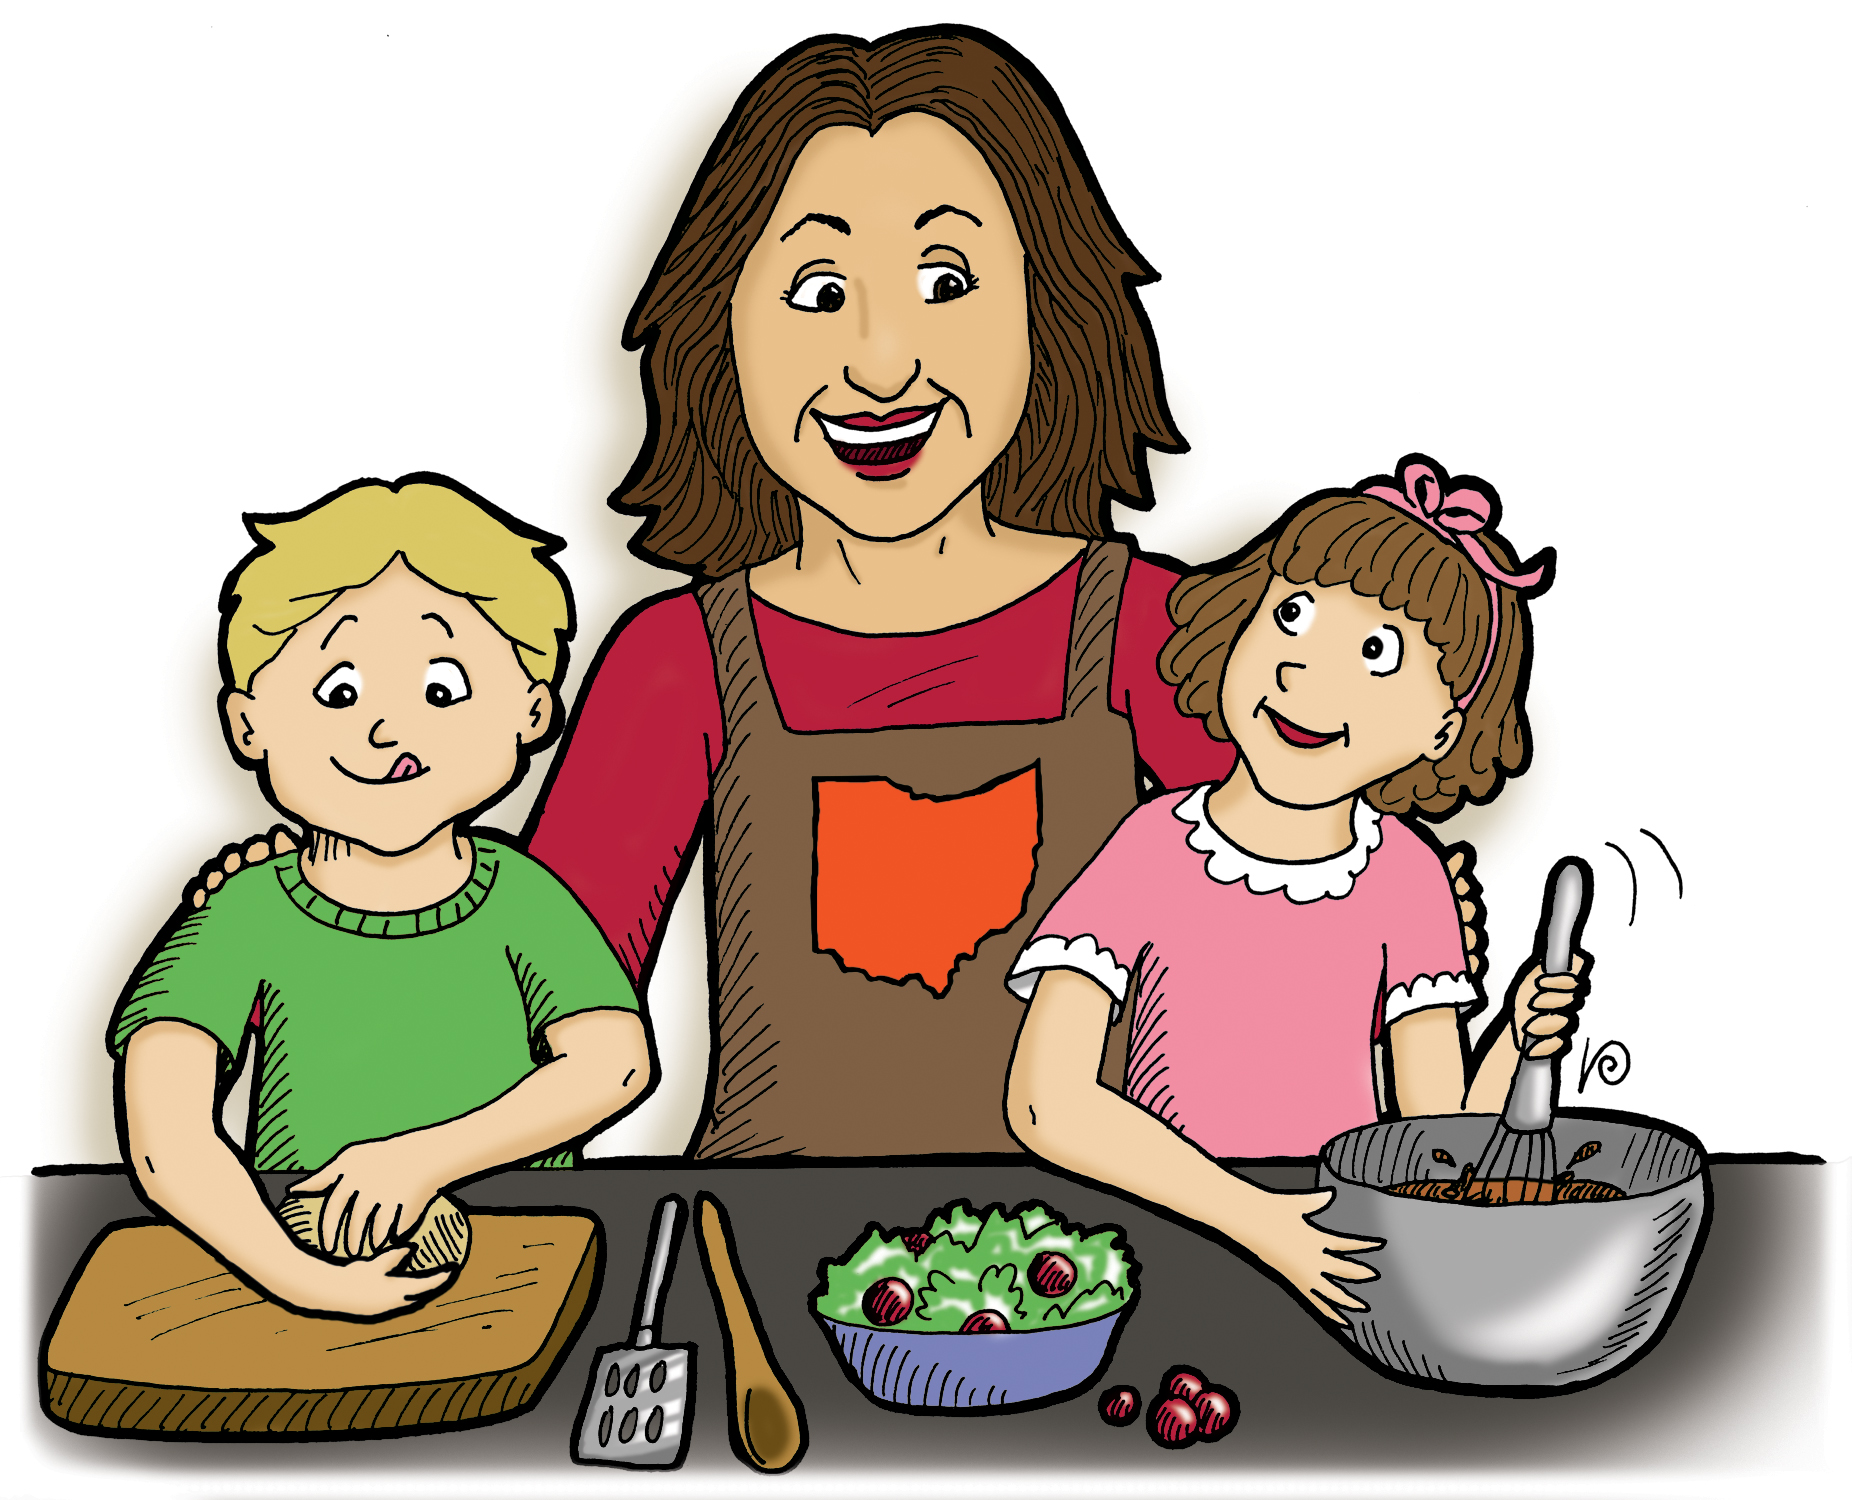 Children Cooking Cartoon Erwinnavyanto I-Children Cooking Cartoon Erwinnavyanto In-10